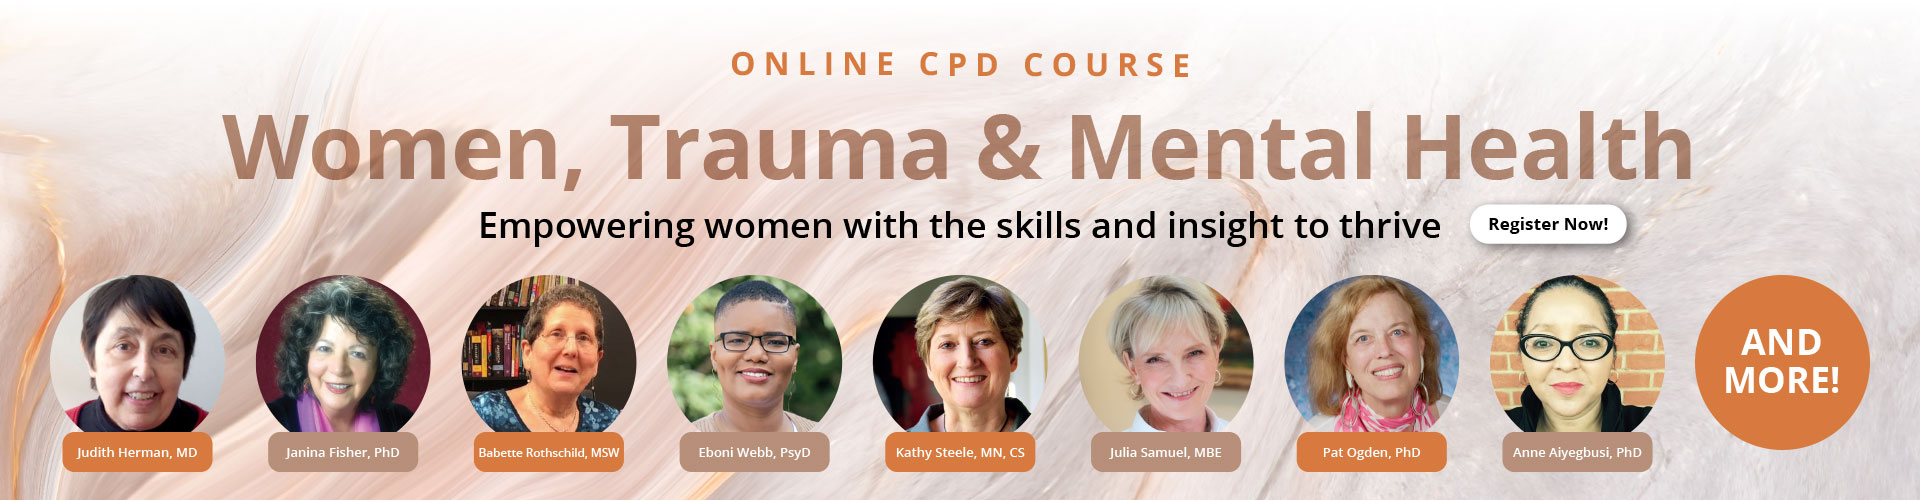 Women, Trauma and Mental Health Master Course: Empowering women with the skills and insight to thrive